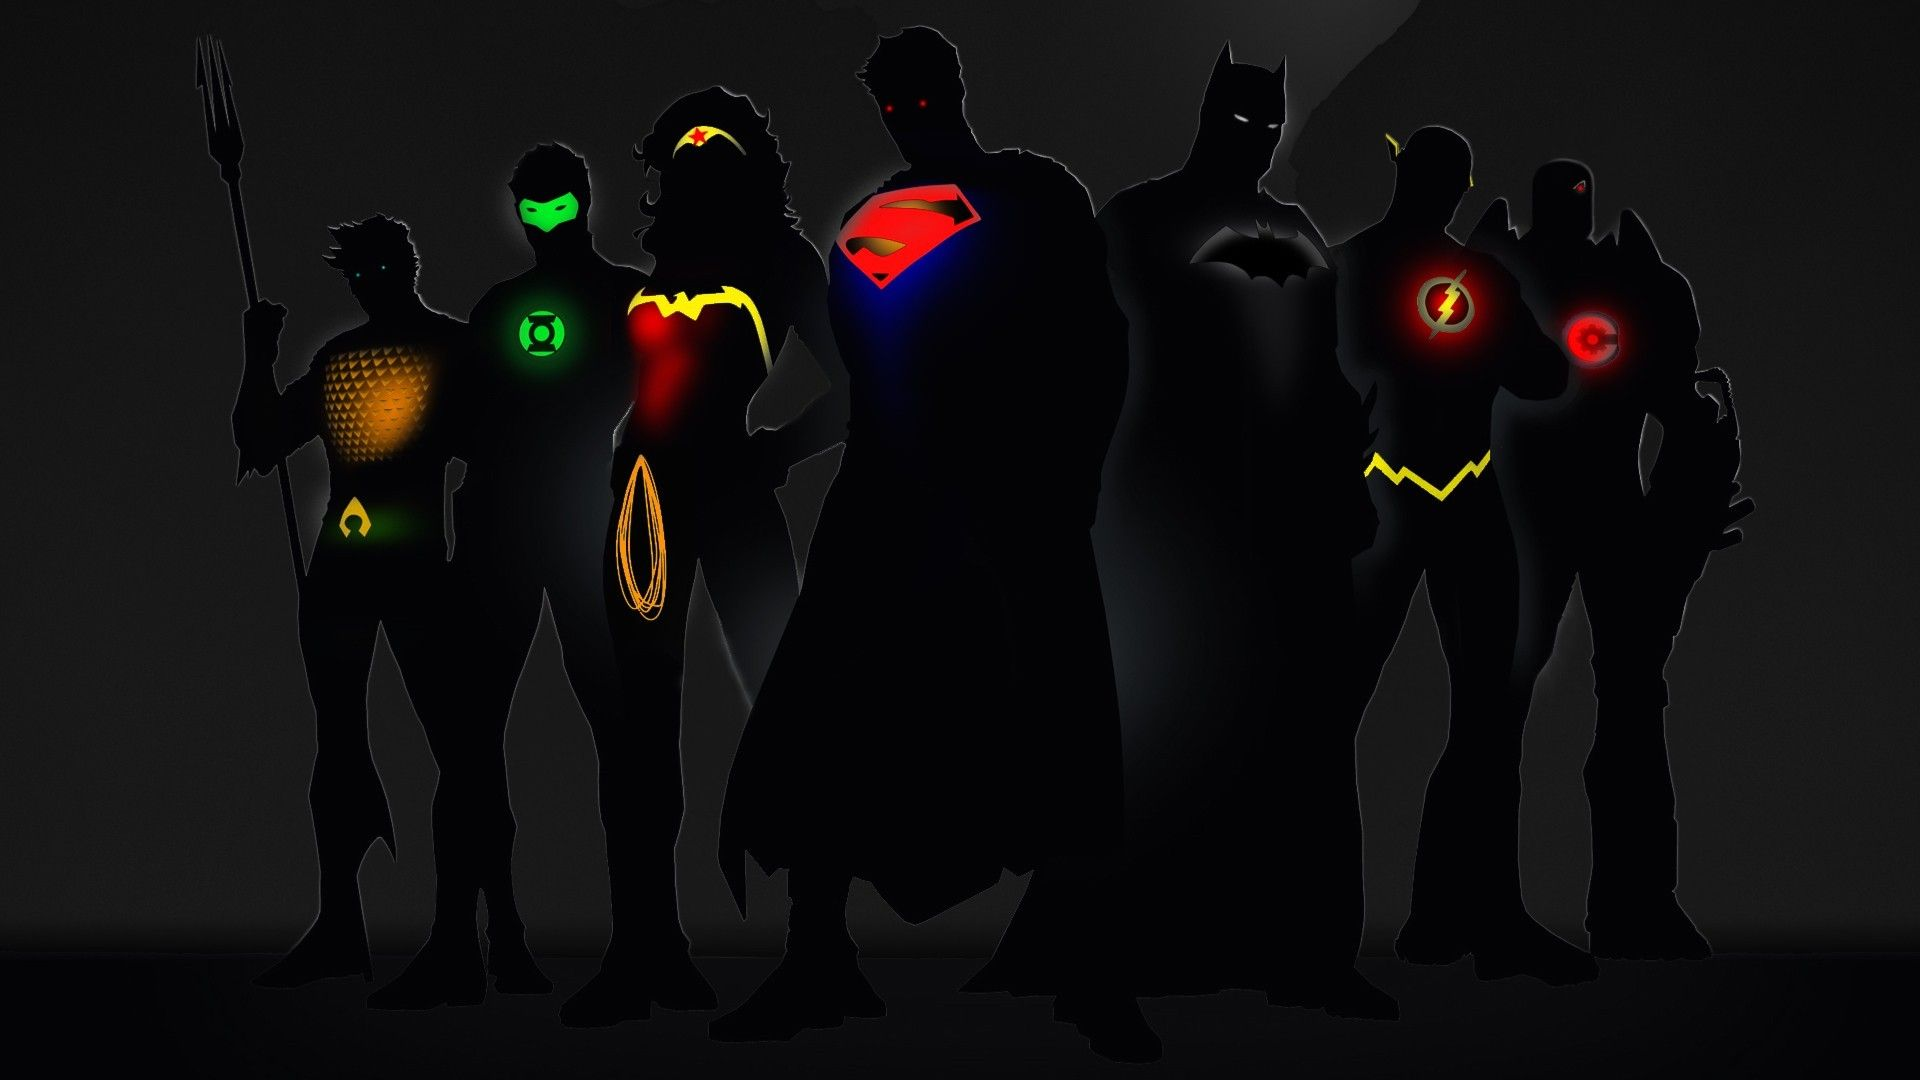 Superheroes Silhouettes Wallpaper Superhero Wallpaper Superhero Wallpaper Hd Dc Comics Wallpaper